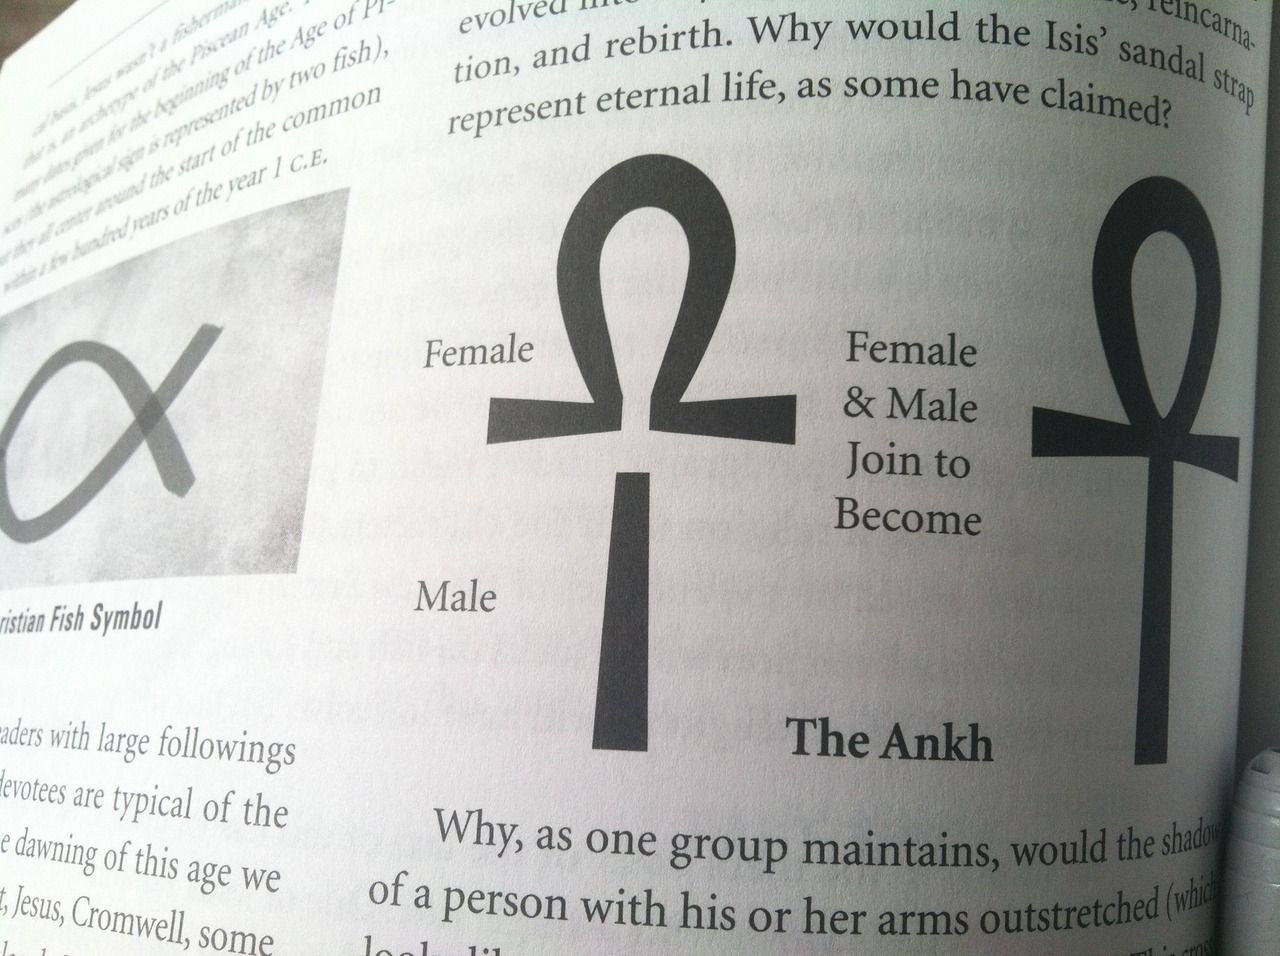 The ankh k or k egyptian ipa anax u2625 the ankh key of life the ancient hieroglyphic that read life it represents the concept of eternal life which is the general meaning of the symbol biocorpaavc